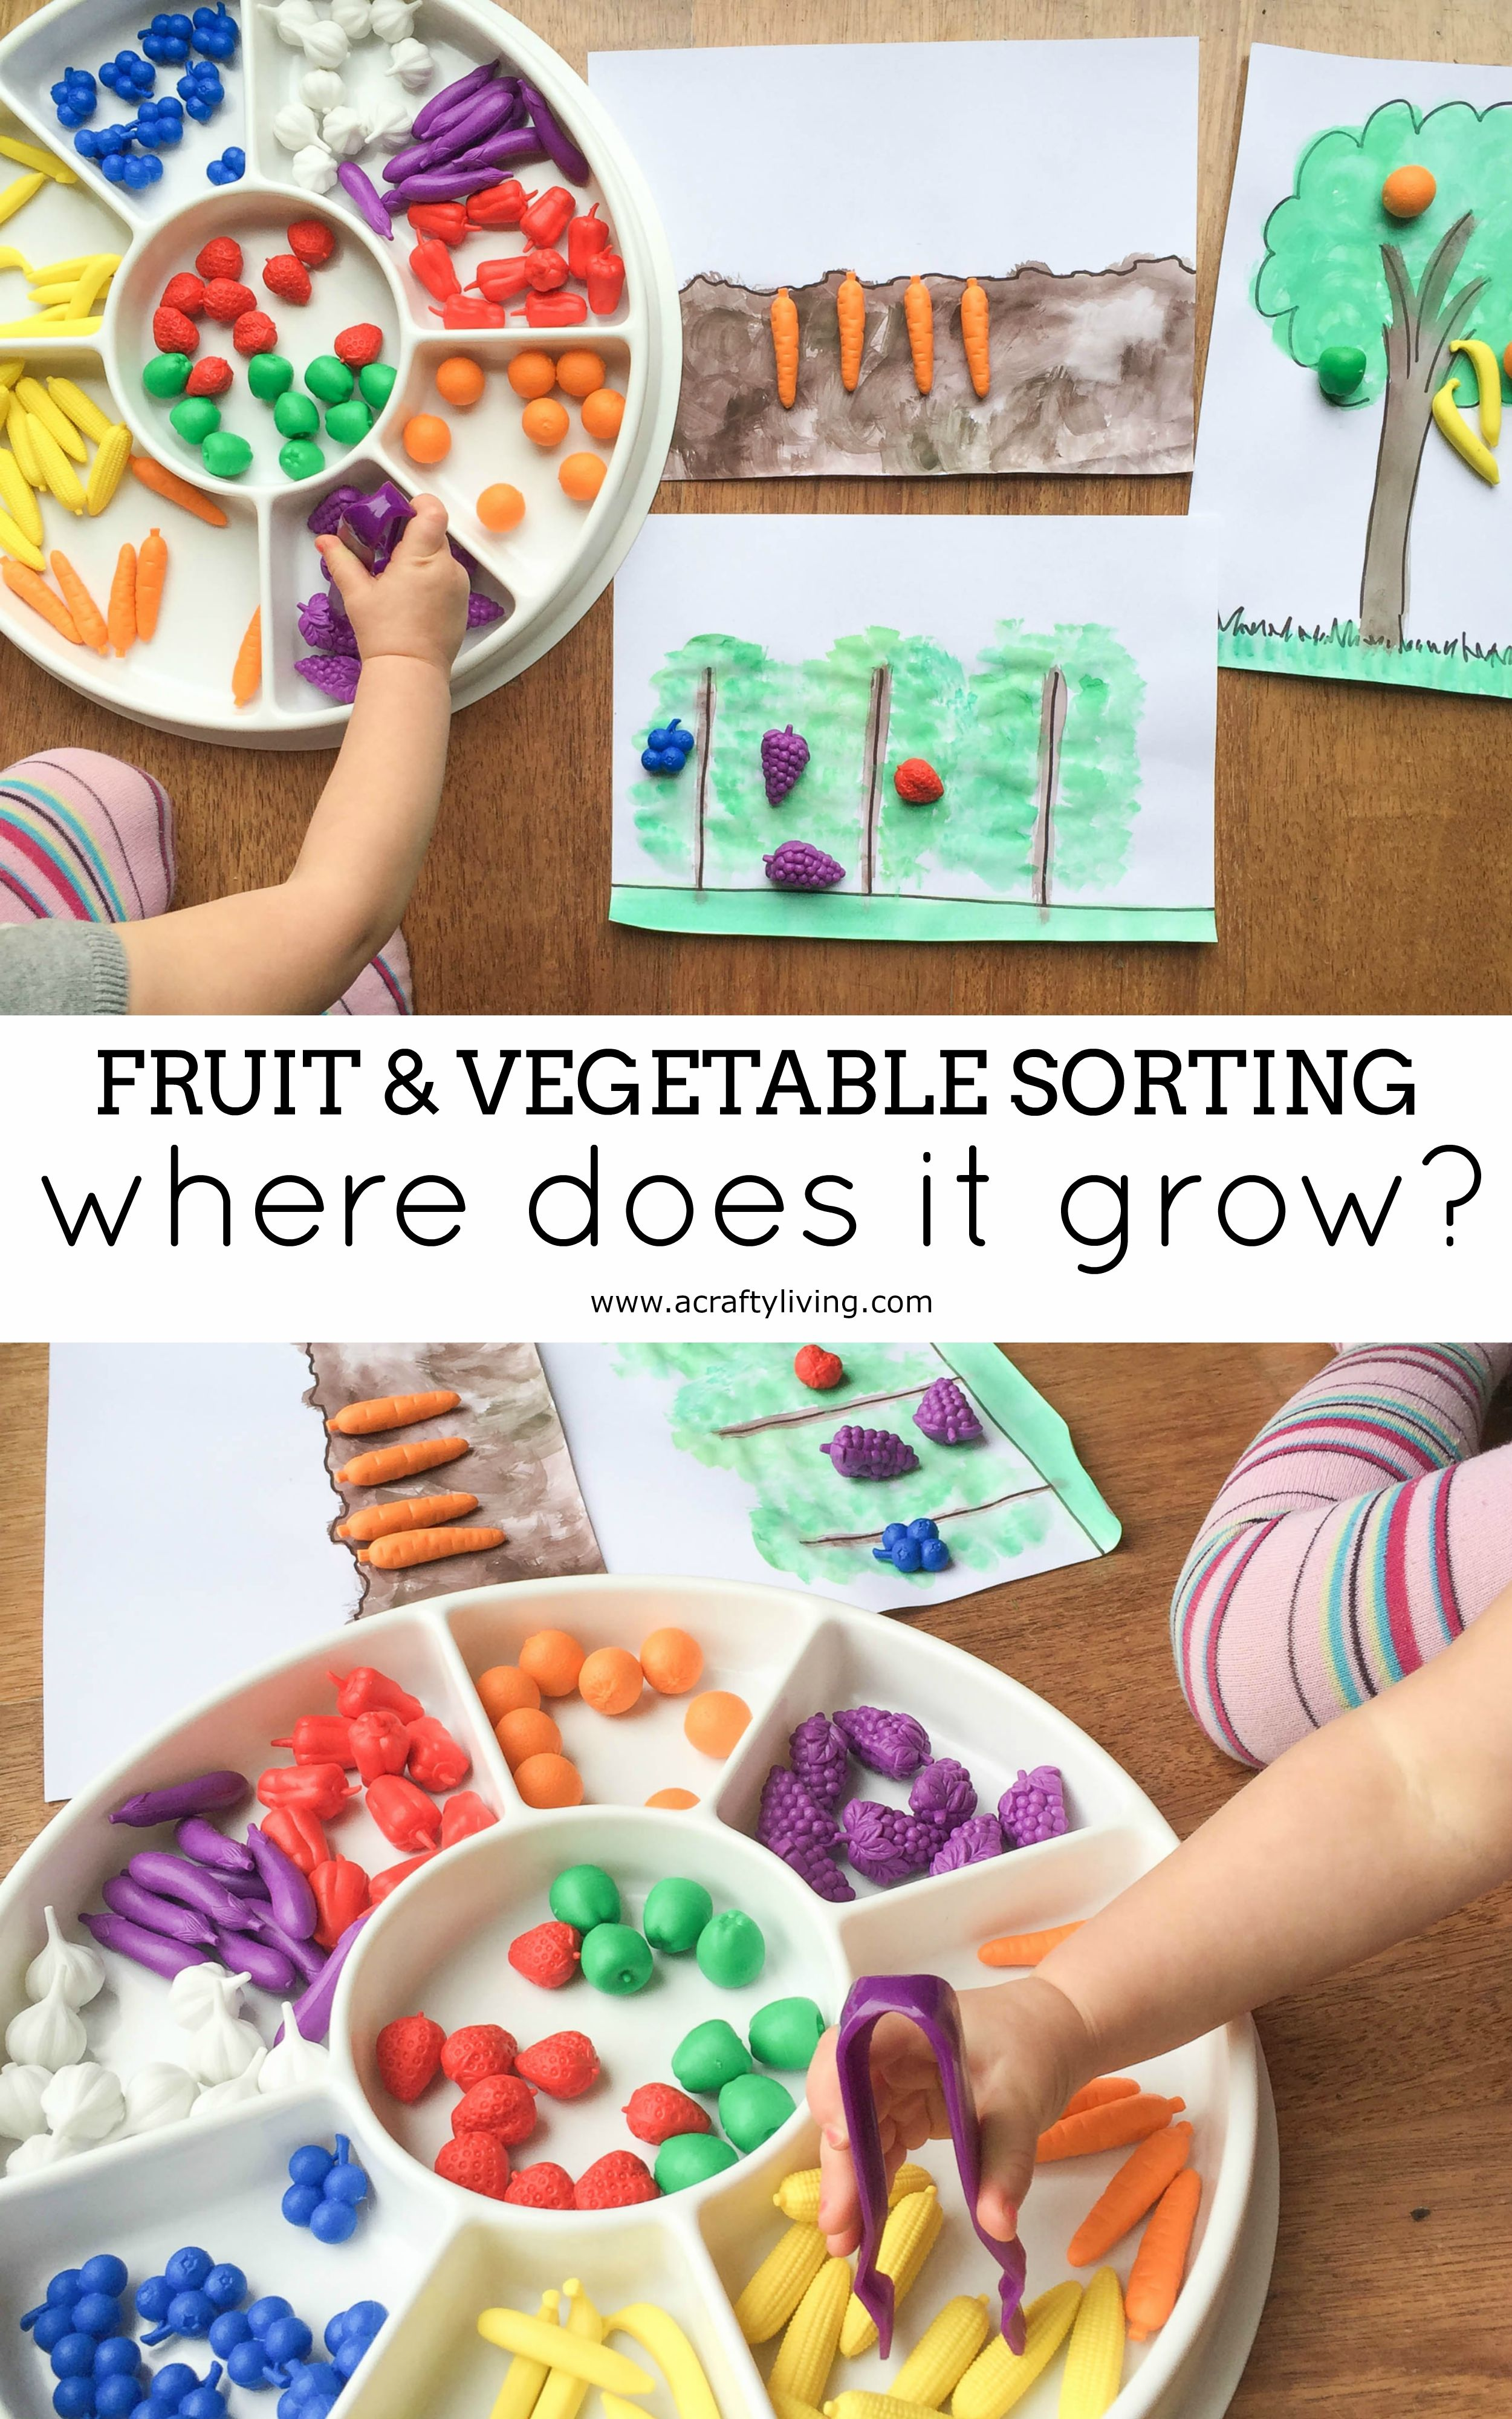 Nutritional Fun Learning Where Food Grows With Fruit